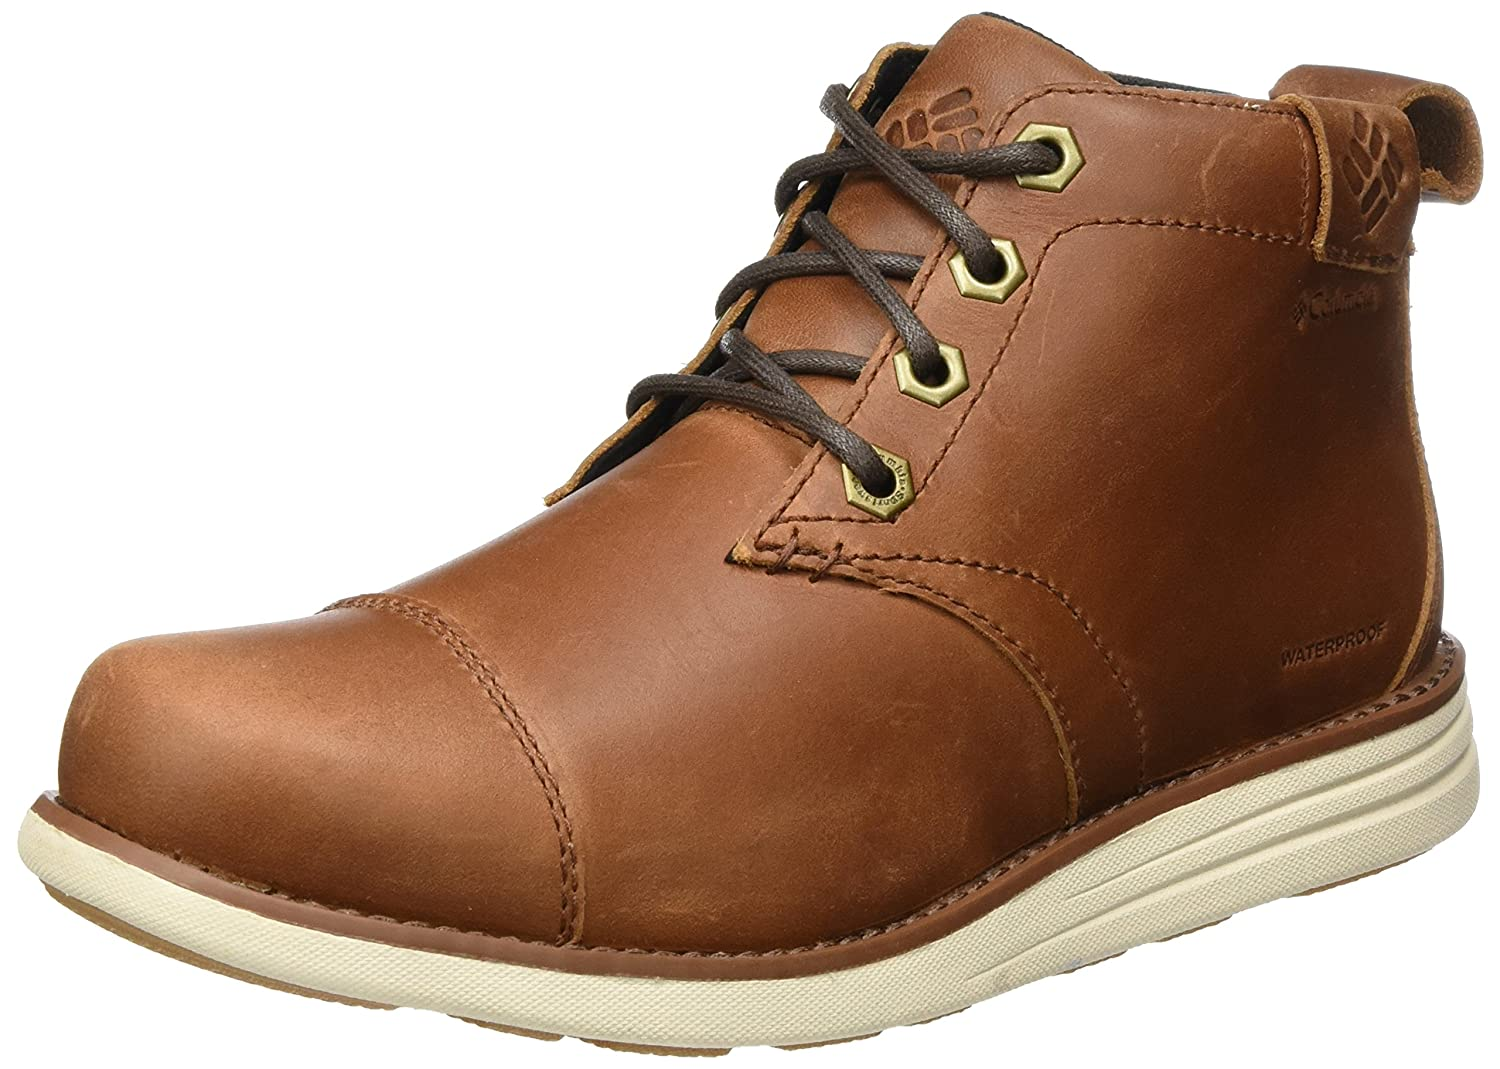 Columbia Herren Cinnamon/Maple Irvington Ltr Wp Chukka Boots, Cinnamon/Maple Herren Braun (Cinnamon/ Maple) 431b96